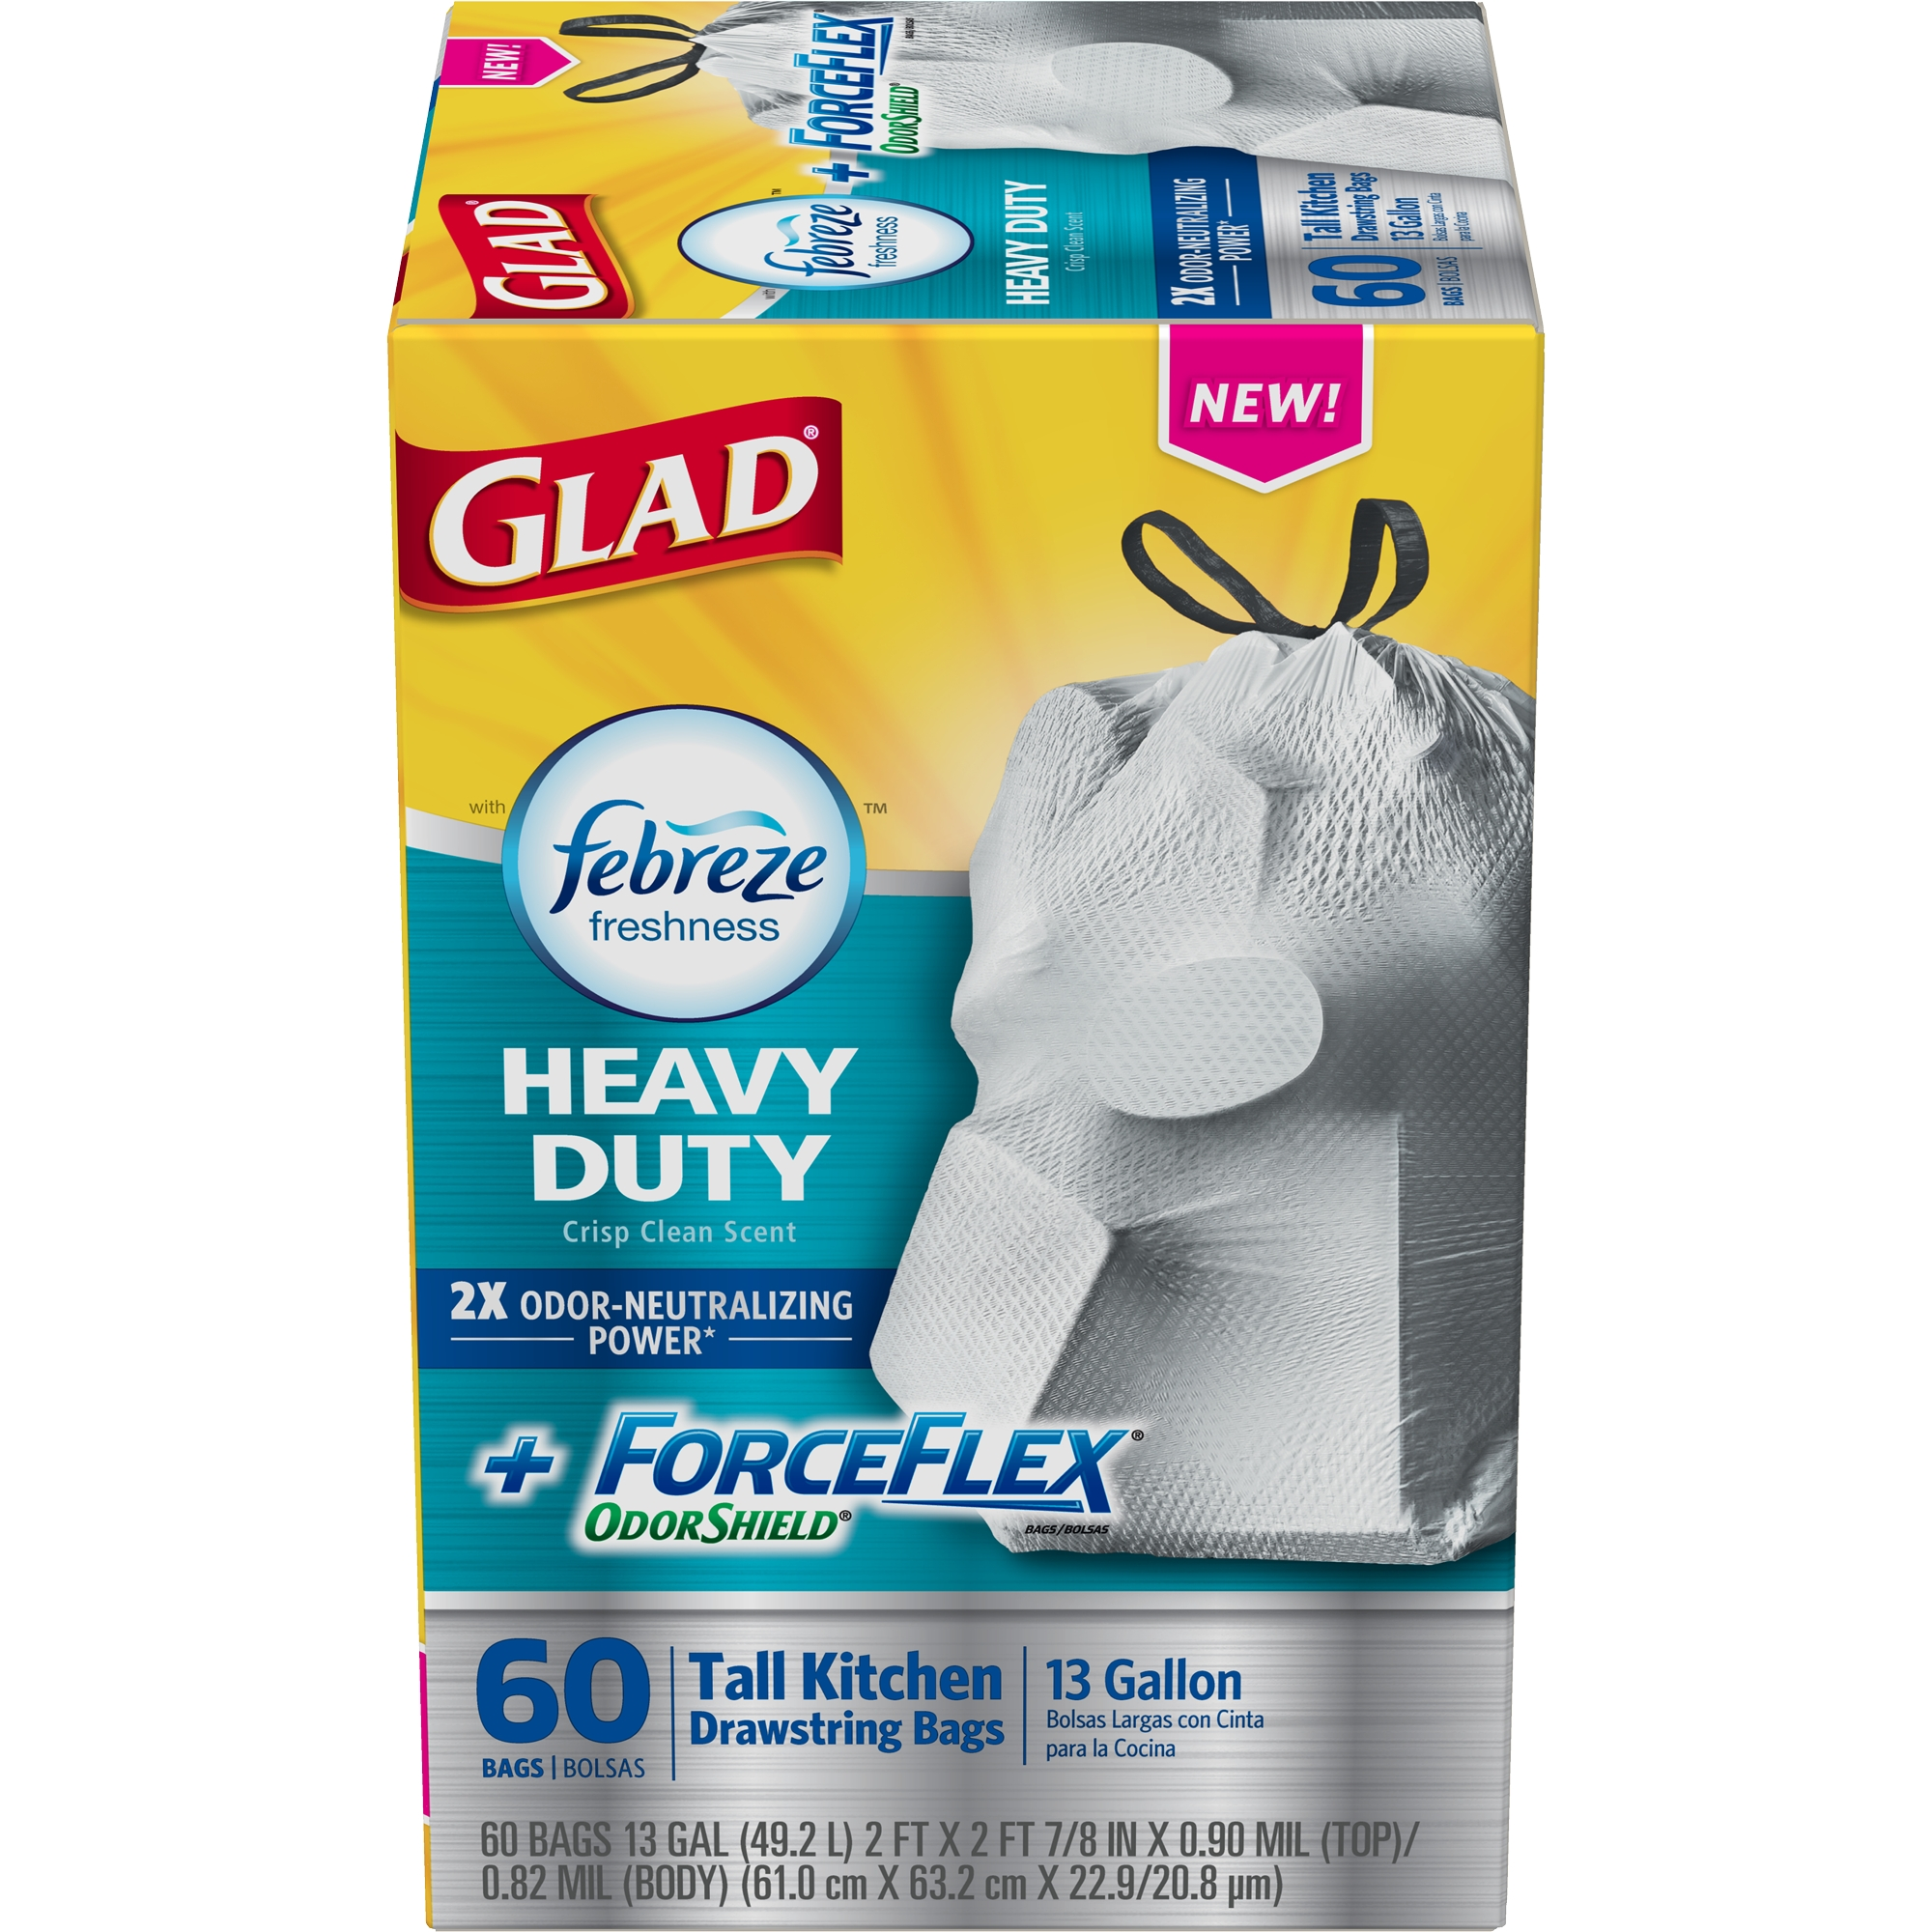 RUUNNN RIGHT NOW For This KILLER Deal On Glad Trash Bags Through 1 ...